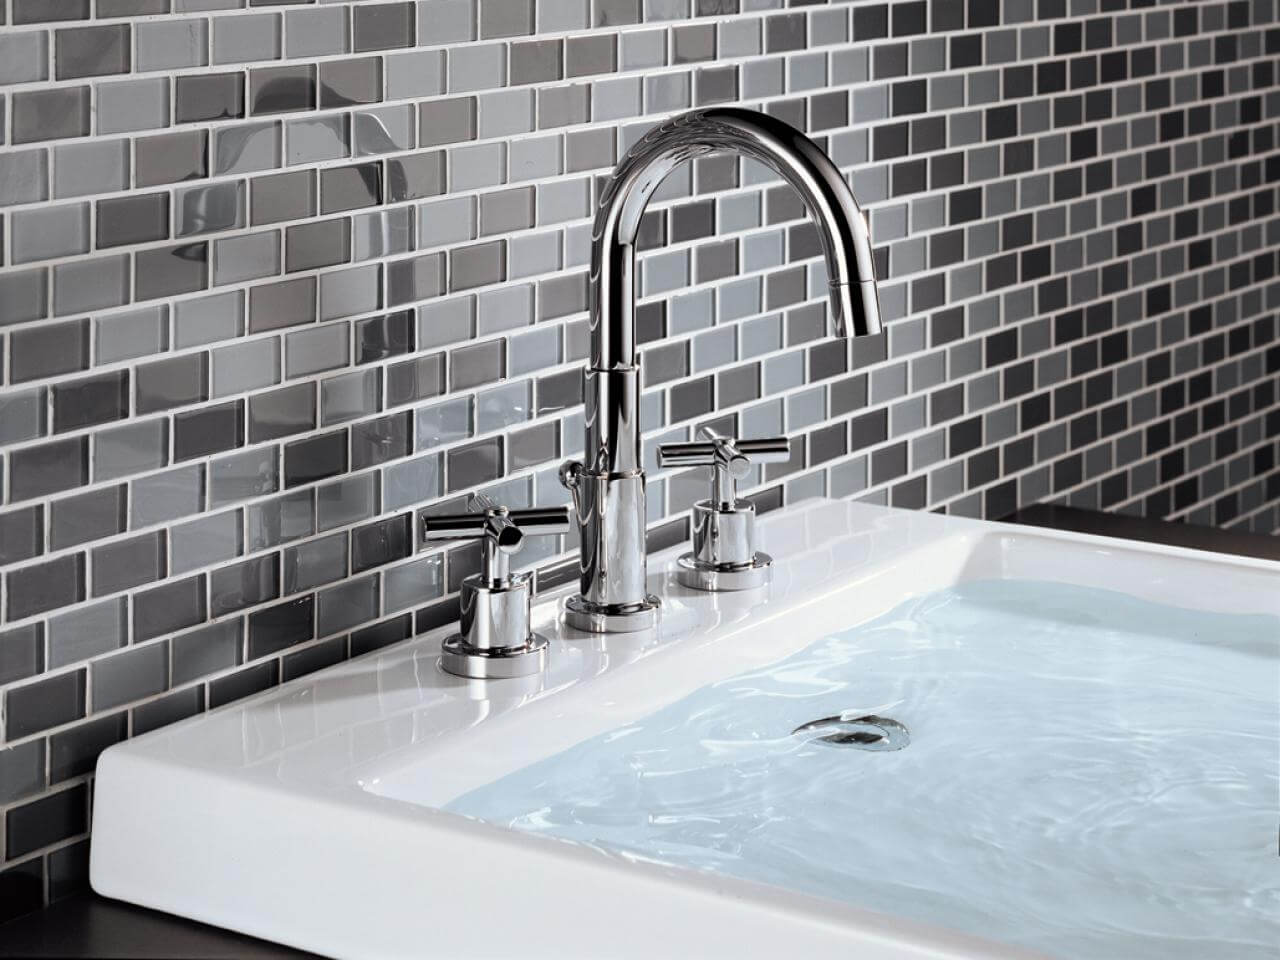 How to Choose the Best Material for Bathroom Fixtures